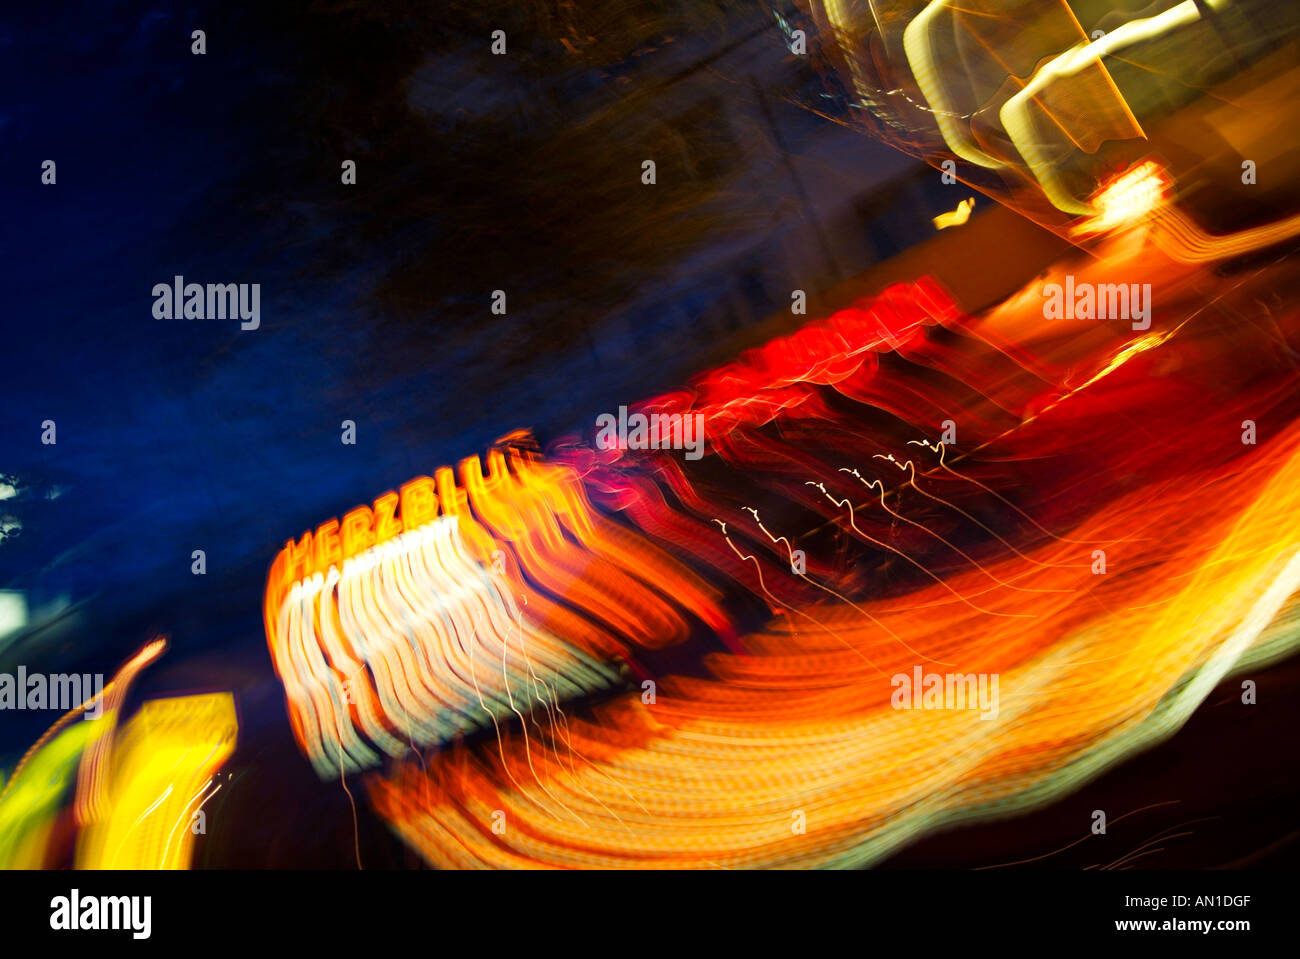 Hamburg Germany Northern Europe at night,  dynamic drive by car trough the legendary Reeperbahn - Stock Image